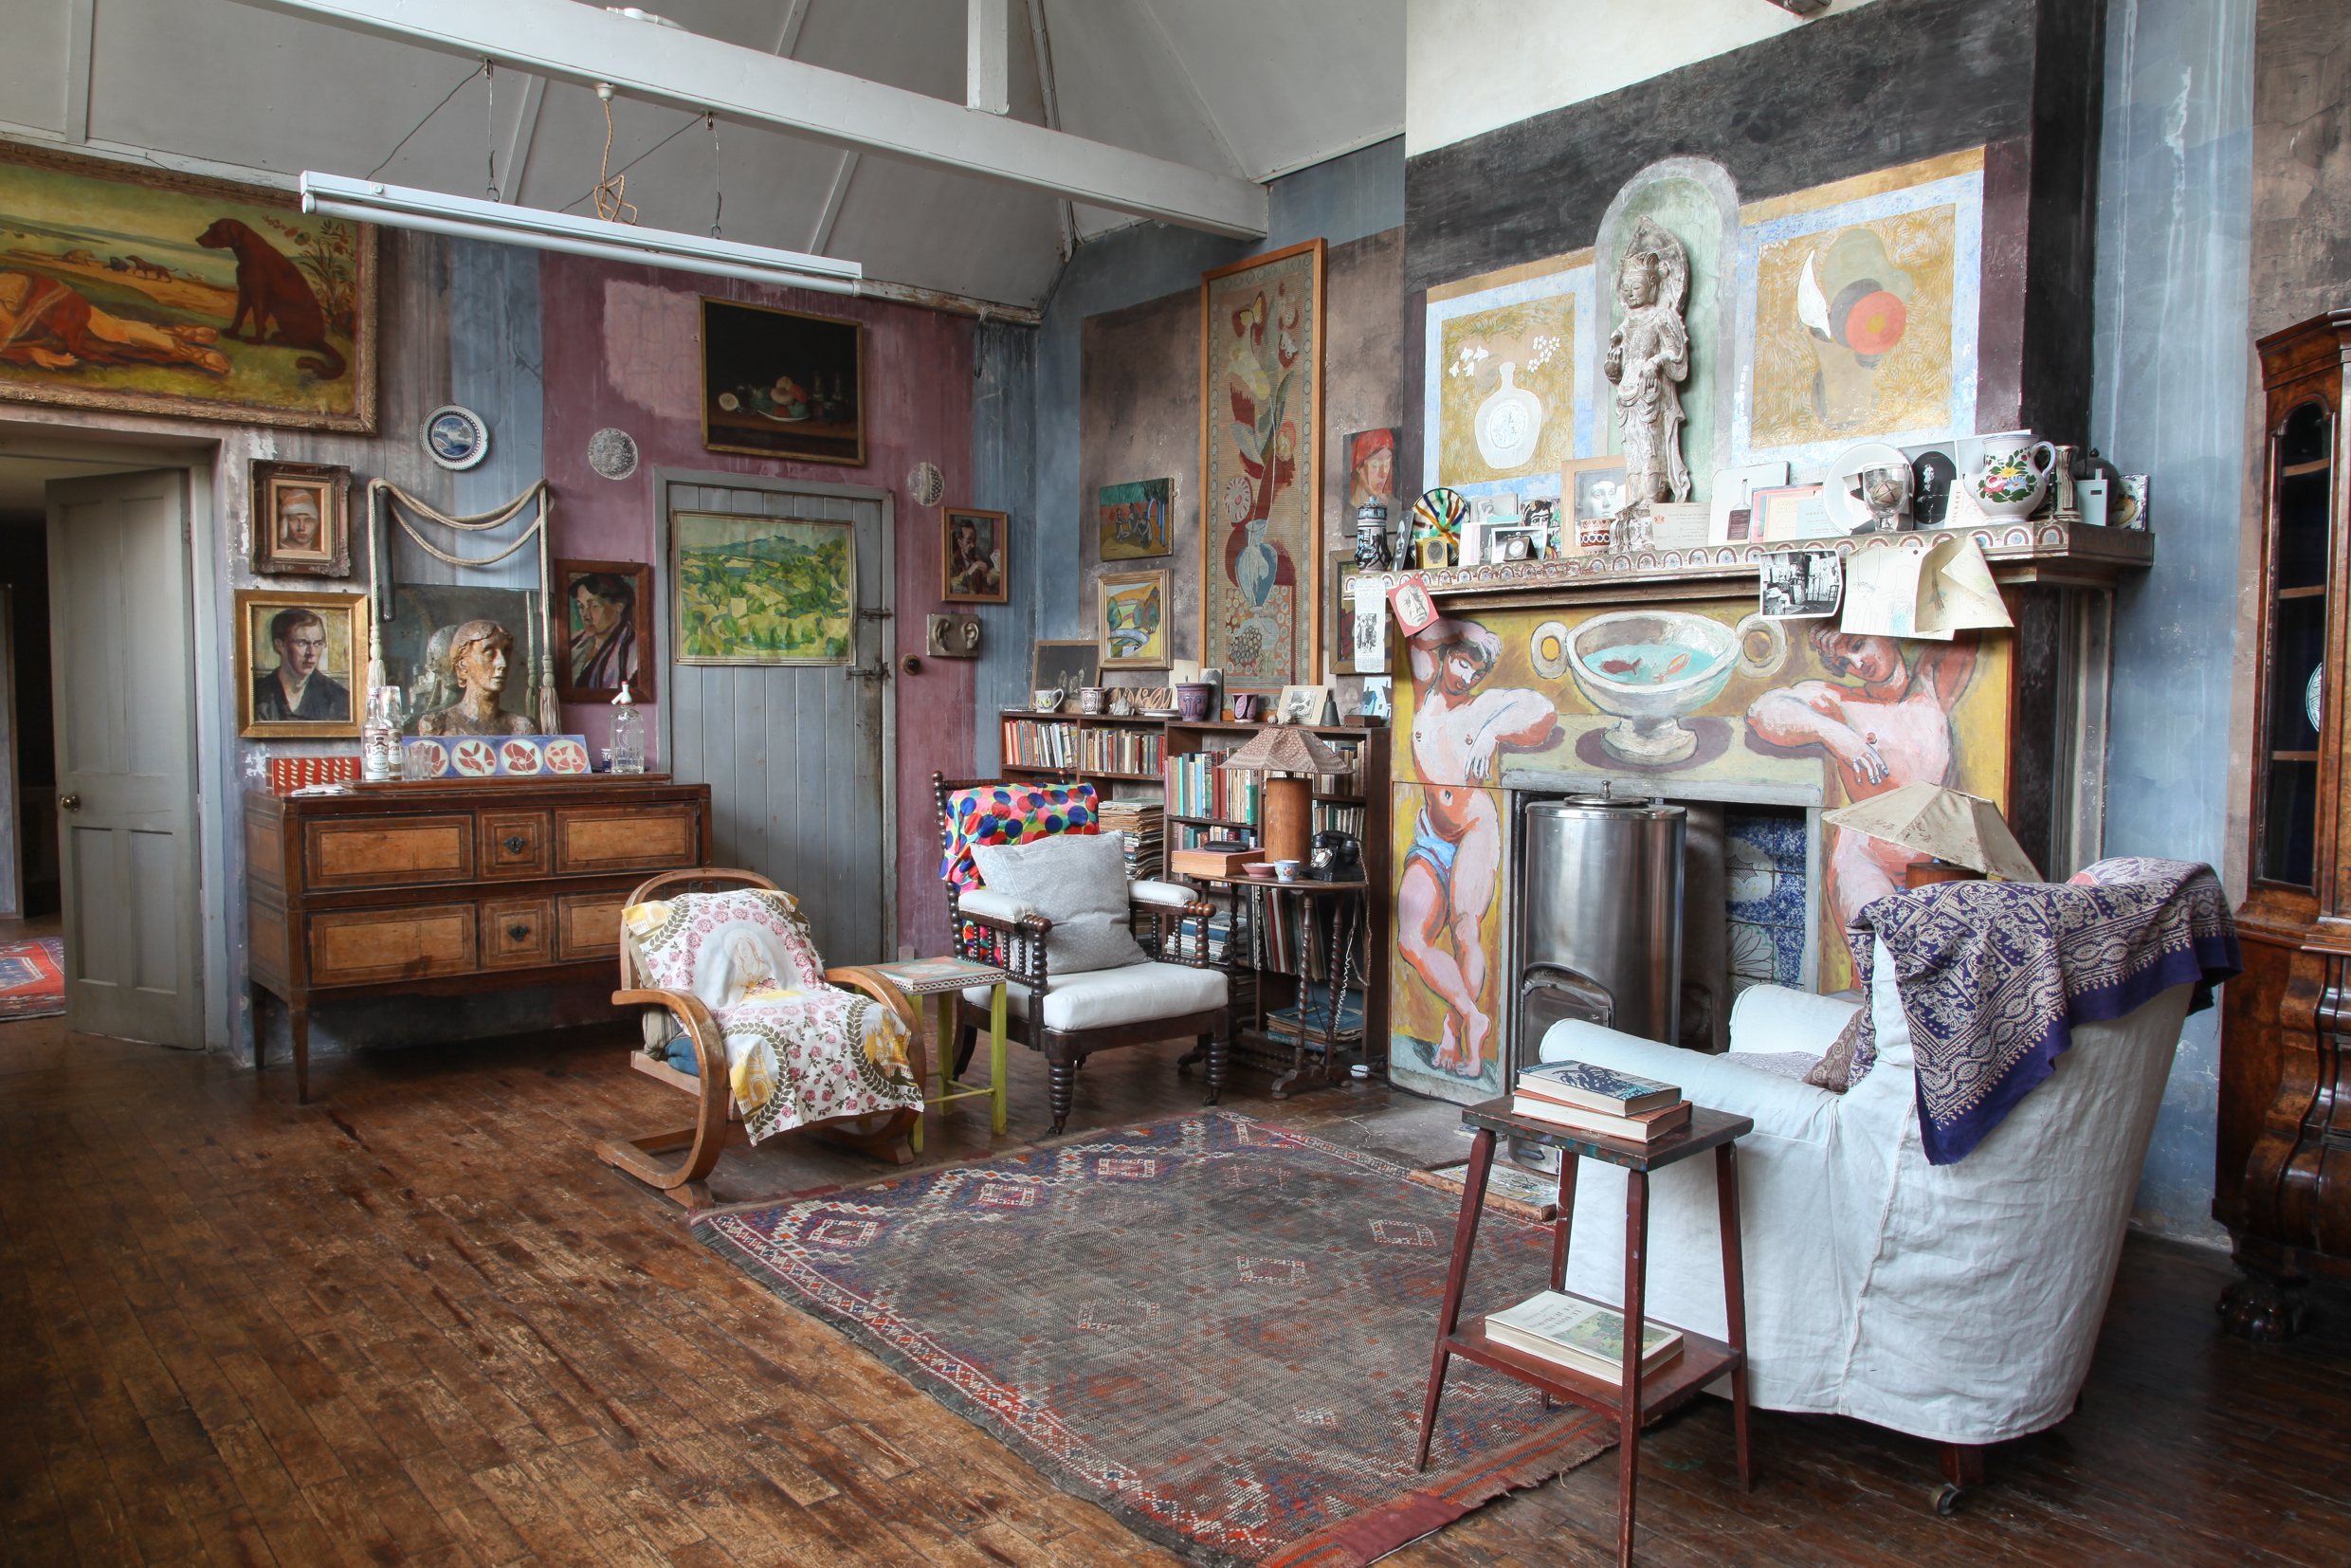 The studio at Charleston. Photograph © Penelope Fewster